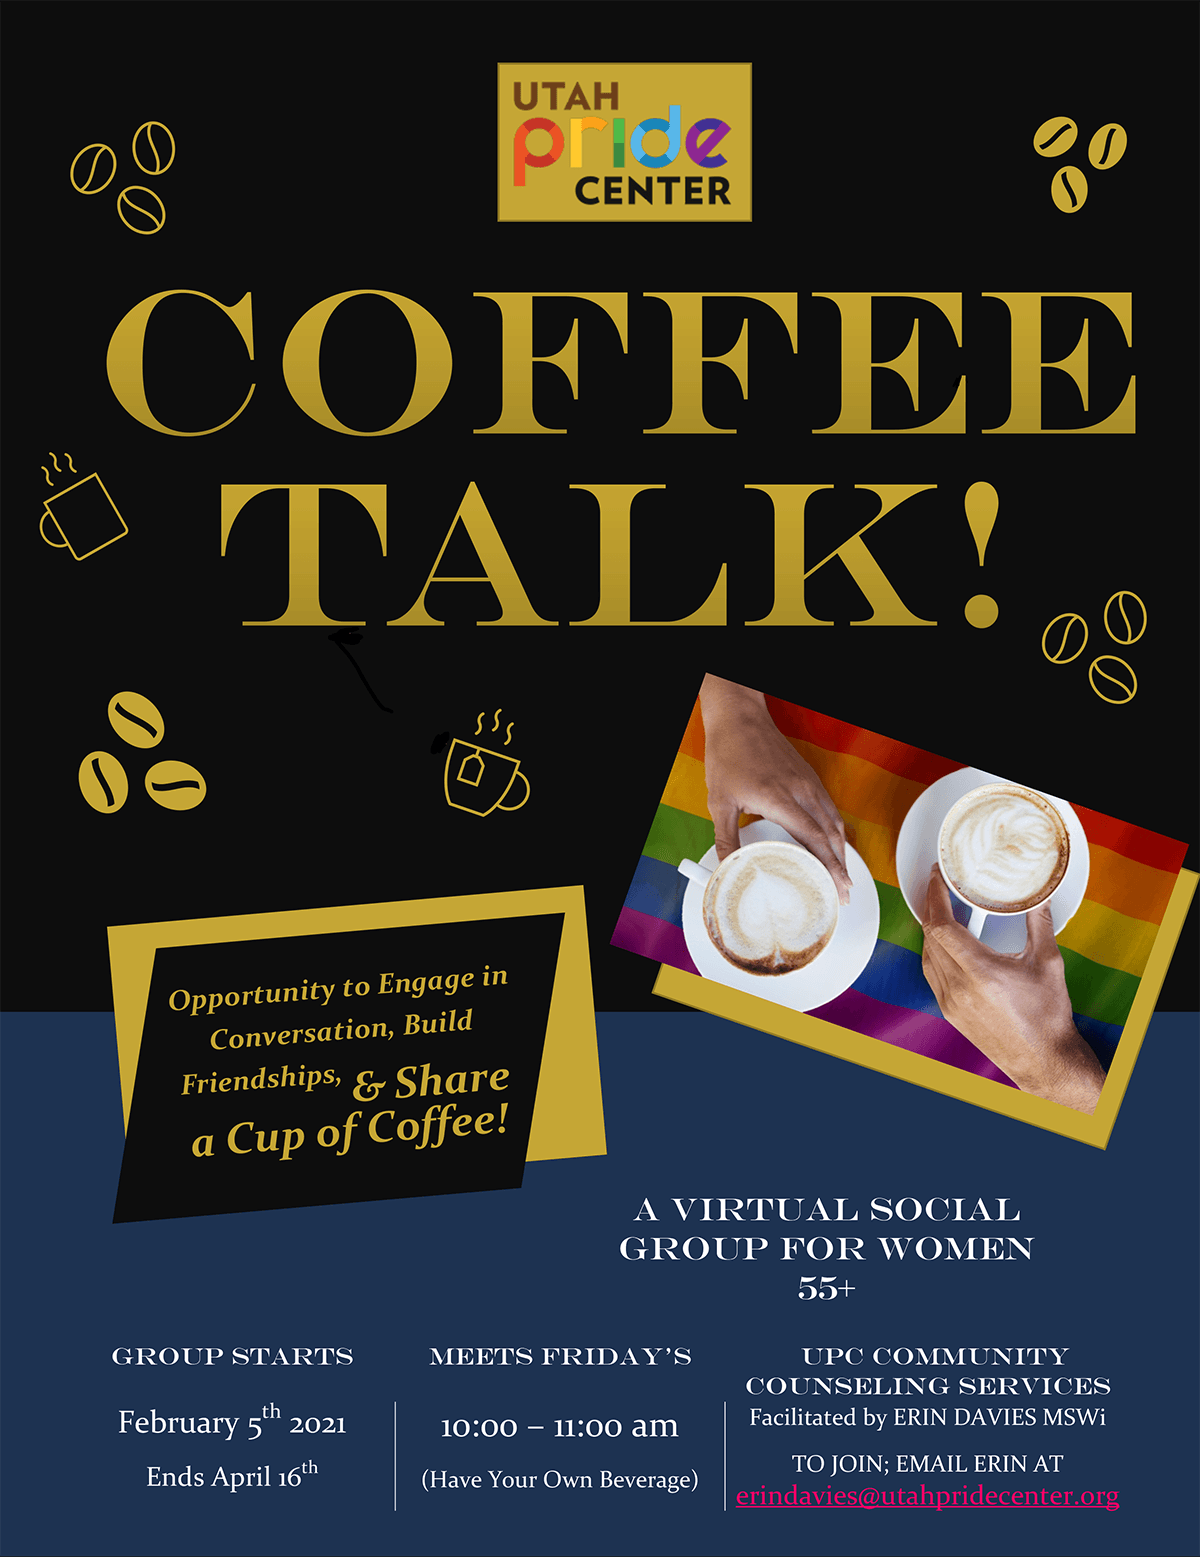 Coffee Talk! Opportunity to engage in Conversation, Build Friendships, & Share Coffee (Virtual so bring your own beverage)!!